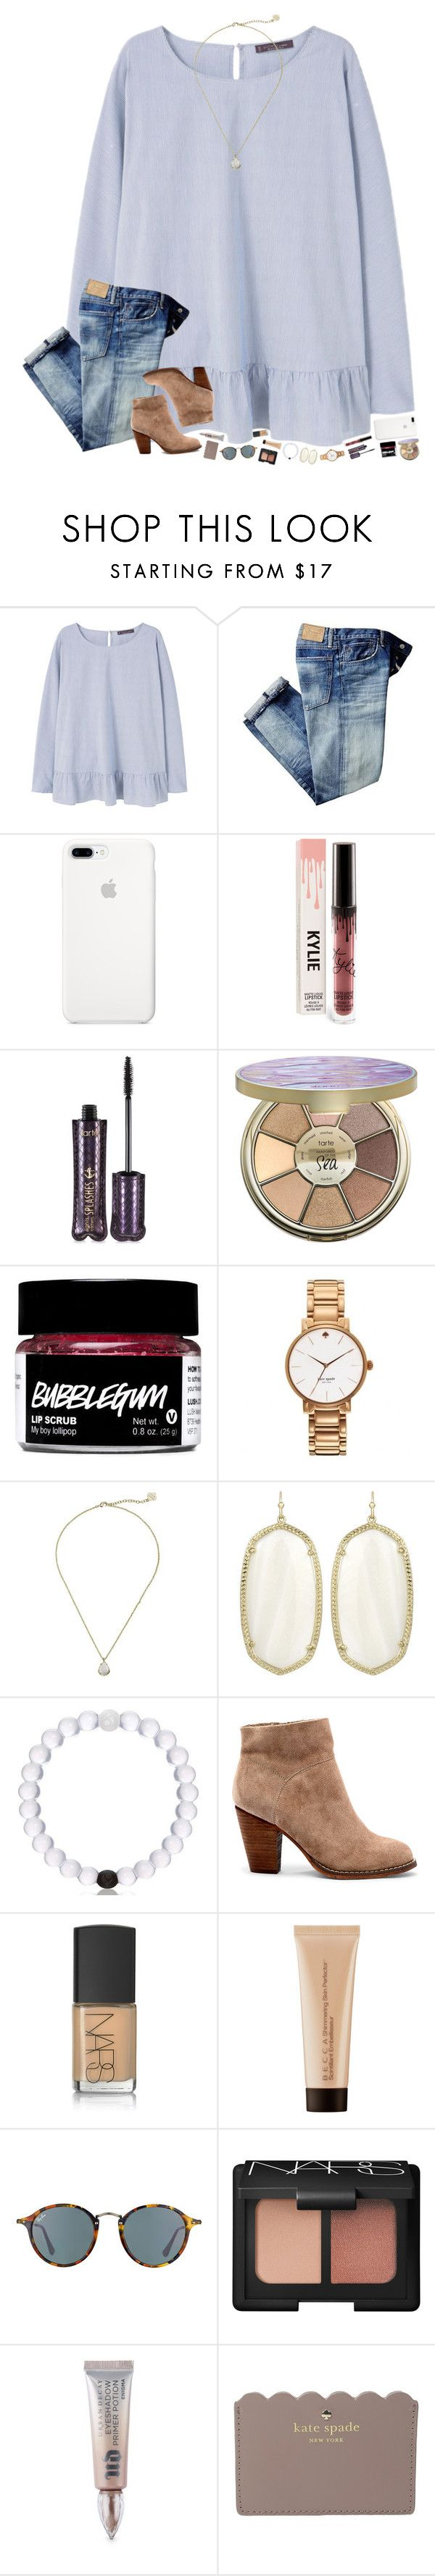 """do y'all want a Lilly haul? I went kinda crazy in the store "" by hopemarlee ❤ liked on Polyvore featuring Violeta by Mango, tarte, Kate Spade, Kendra Scott, Sole Society, NARS Cosmetics, Becca, Ray-Ban, Urban Decay and hmsloves"